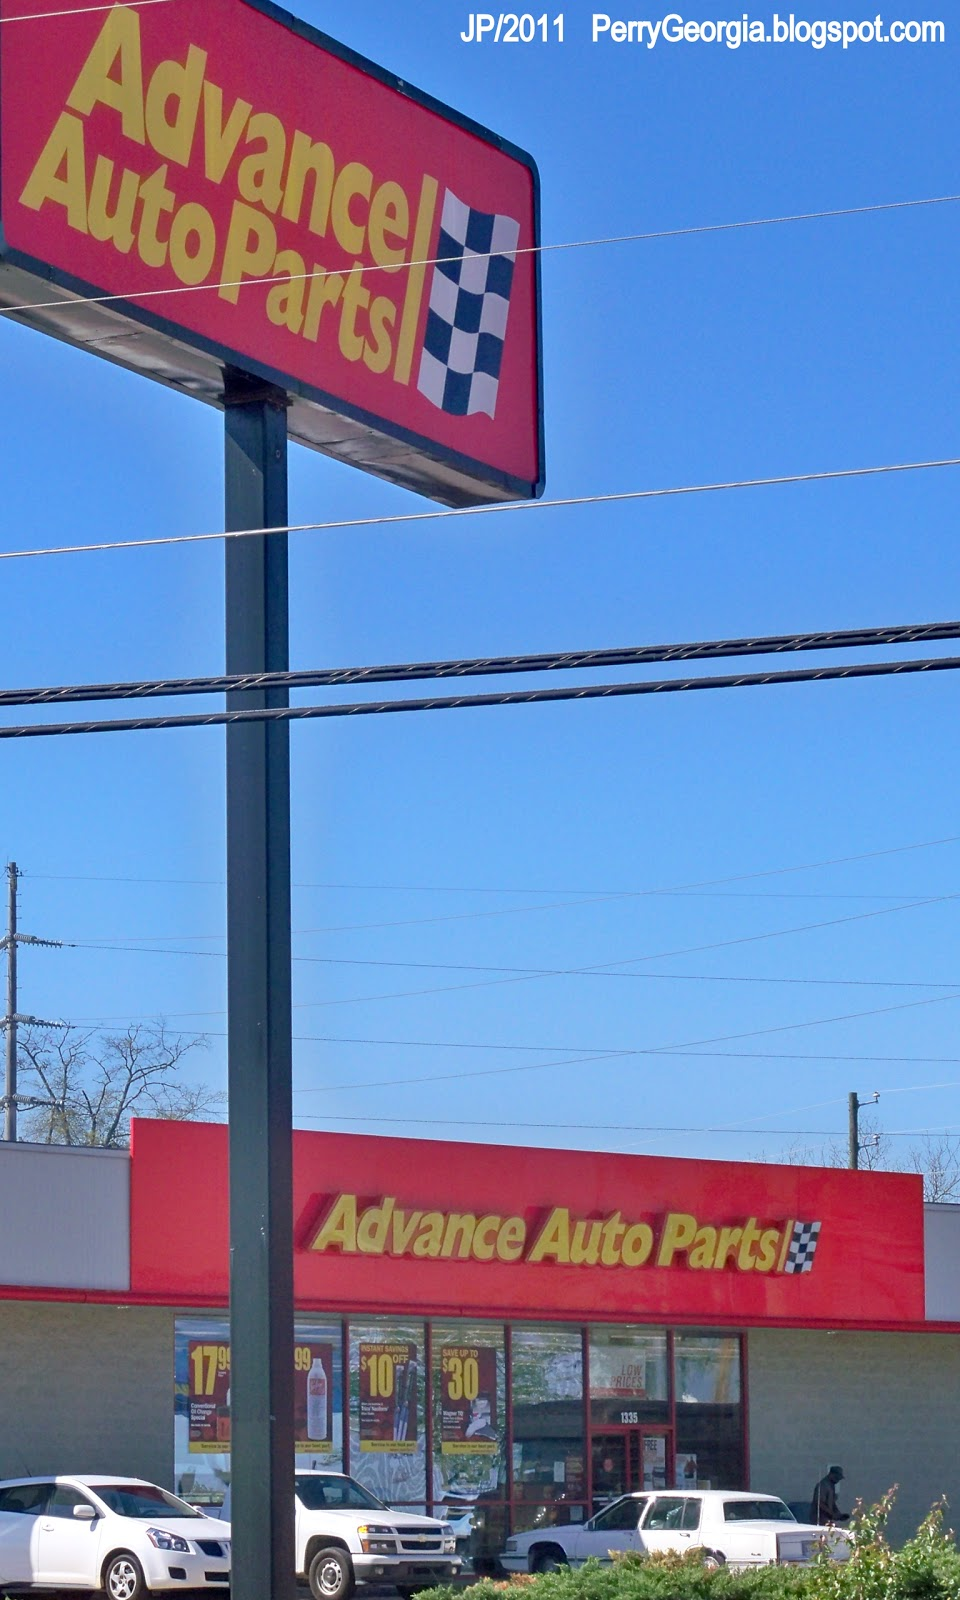 Advance Auto Parts Number >> PERRY GEORGIA Houston Restaurant Hotel Dr.Hospital ...